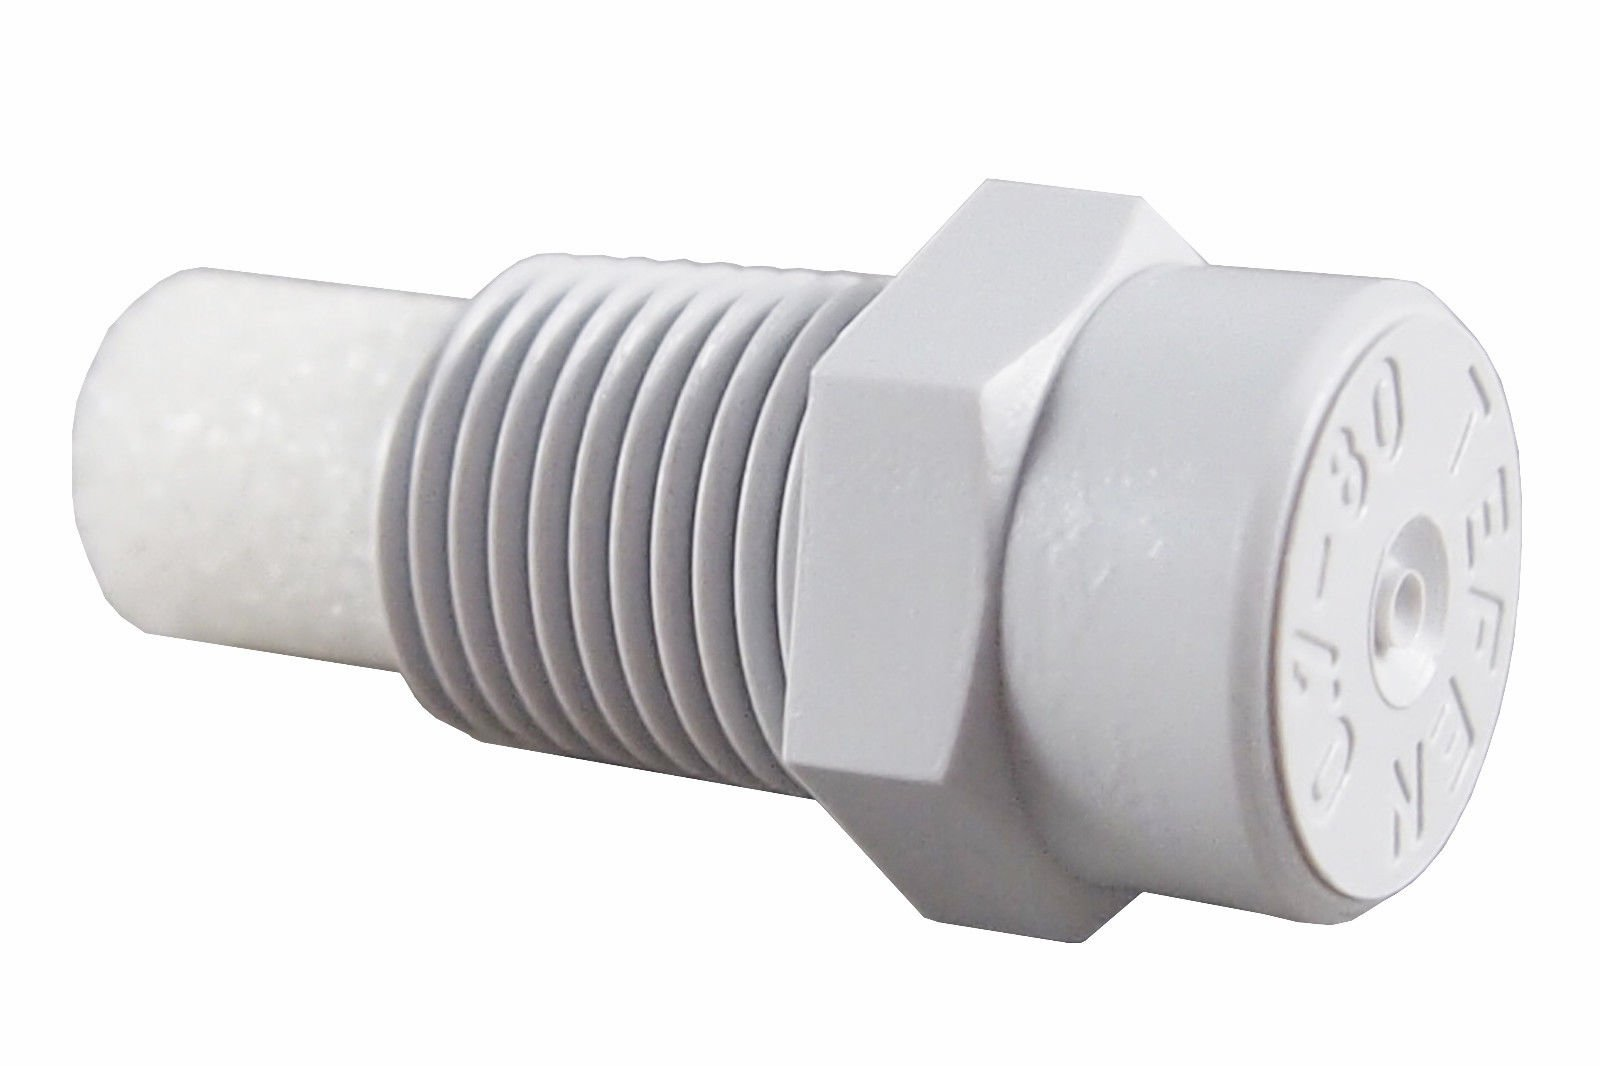 100 Pack) Plastic Fog Nozzle W/Poly Filter Misting Poultry Grey 1/8'' NPT 1 GPH (5N0780GR)